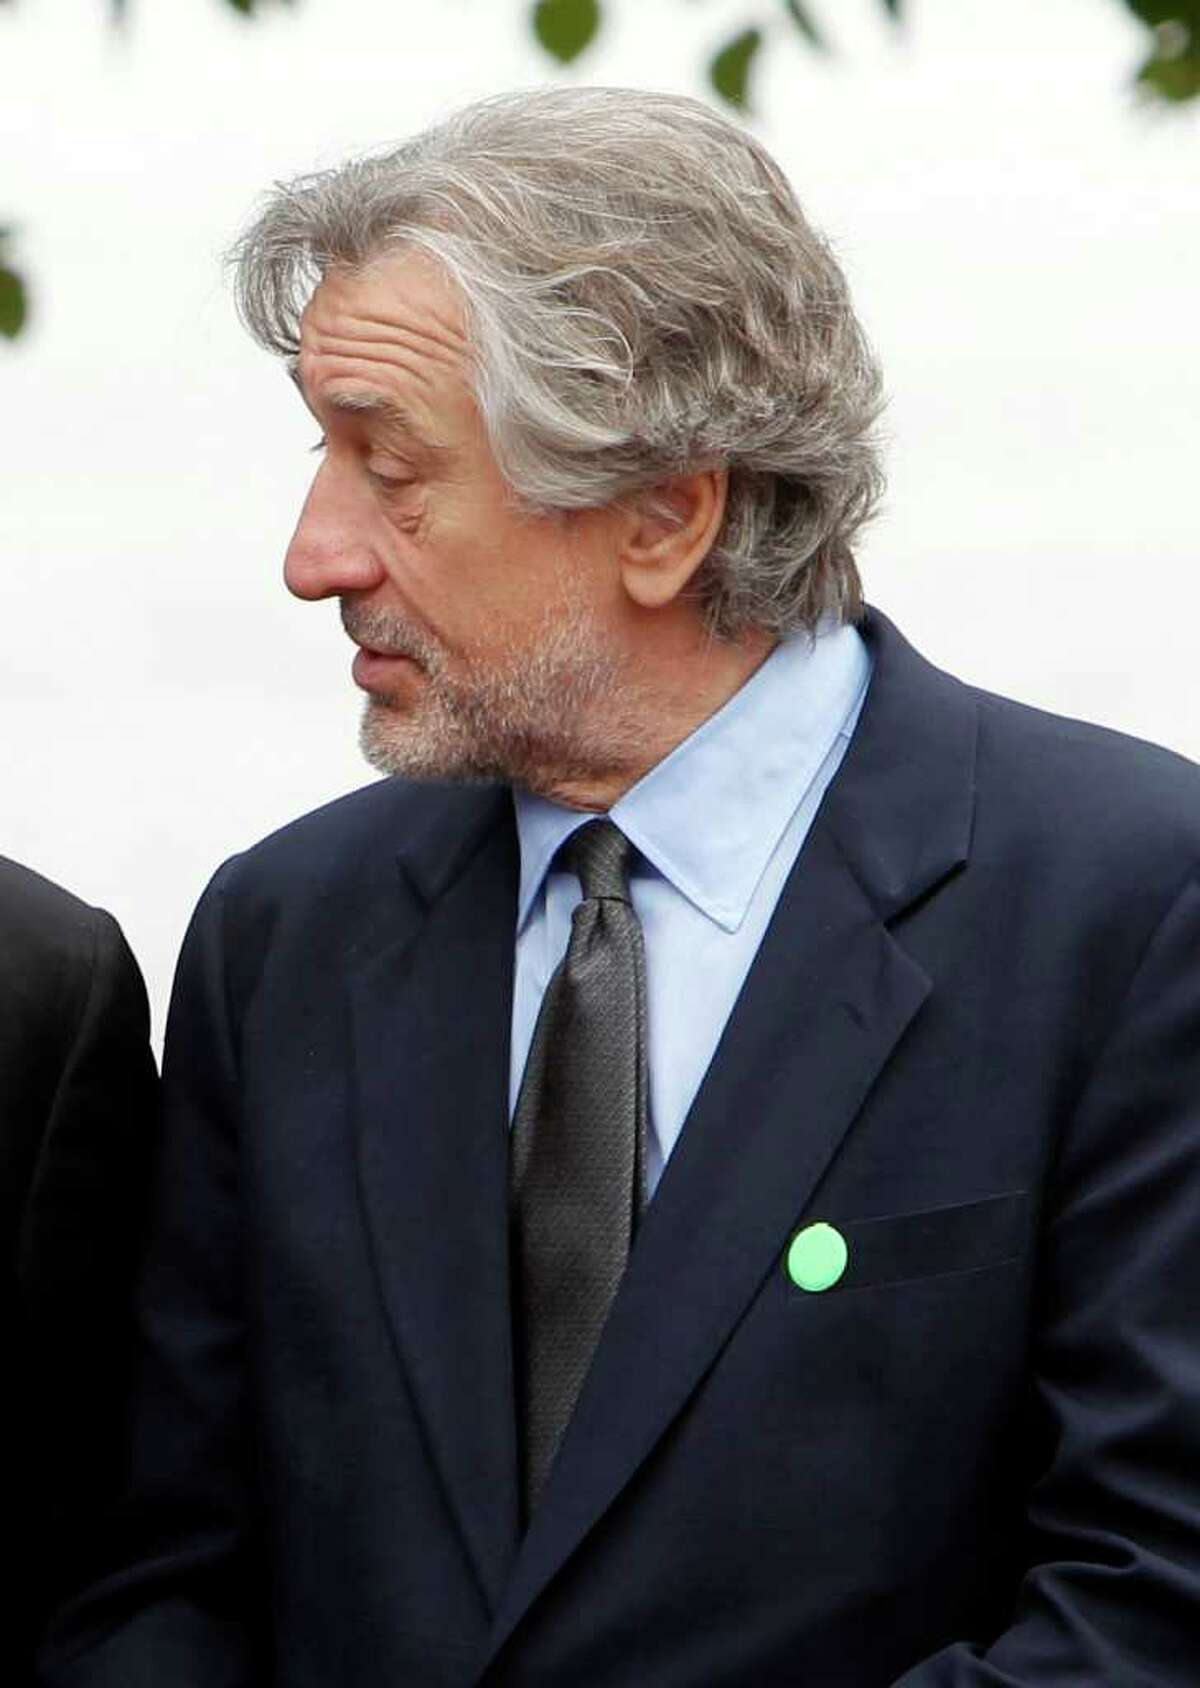 FILE - In this Sept. 22, 2011 file photo, actor Robert De Niro is seen in New York. De Niro opened a fundraiser starring Michelle Obama by listing her Republican rivals and jokingly suggesting that America isn't